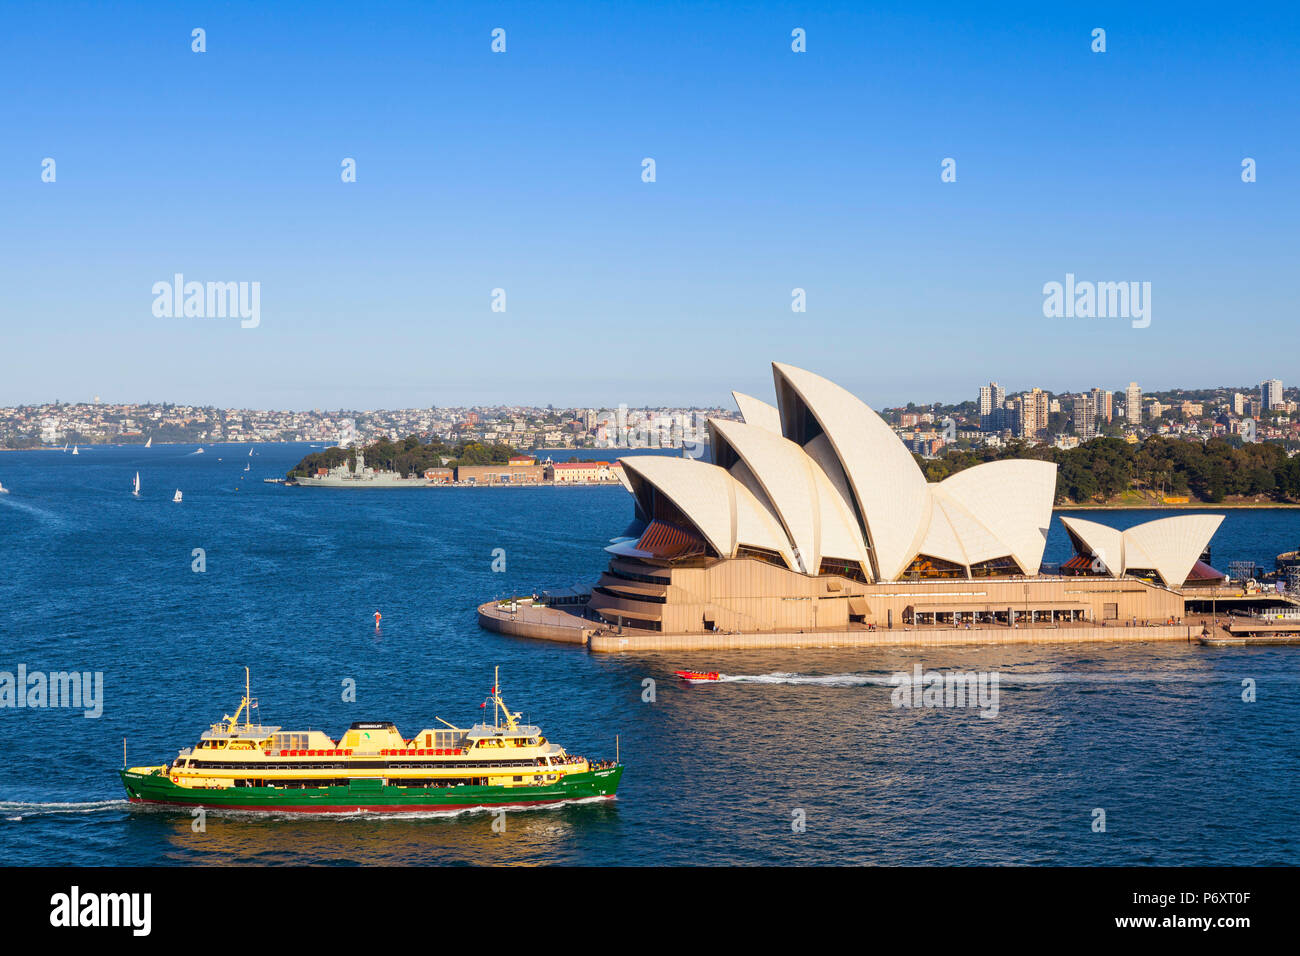 Sydney Opera House, Darling Harbour, Sydney, New South Wales, Australia - Stock Image